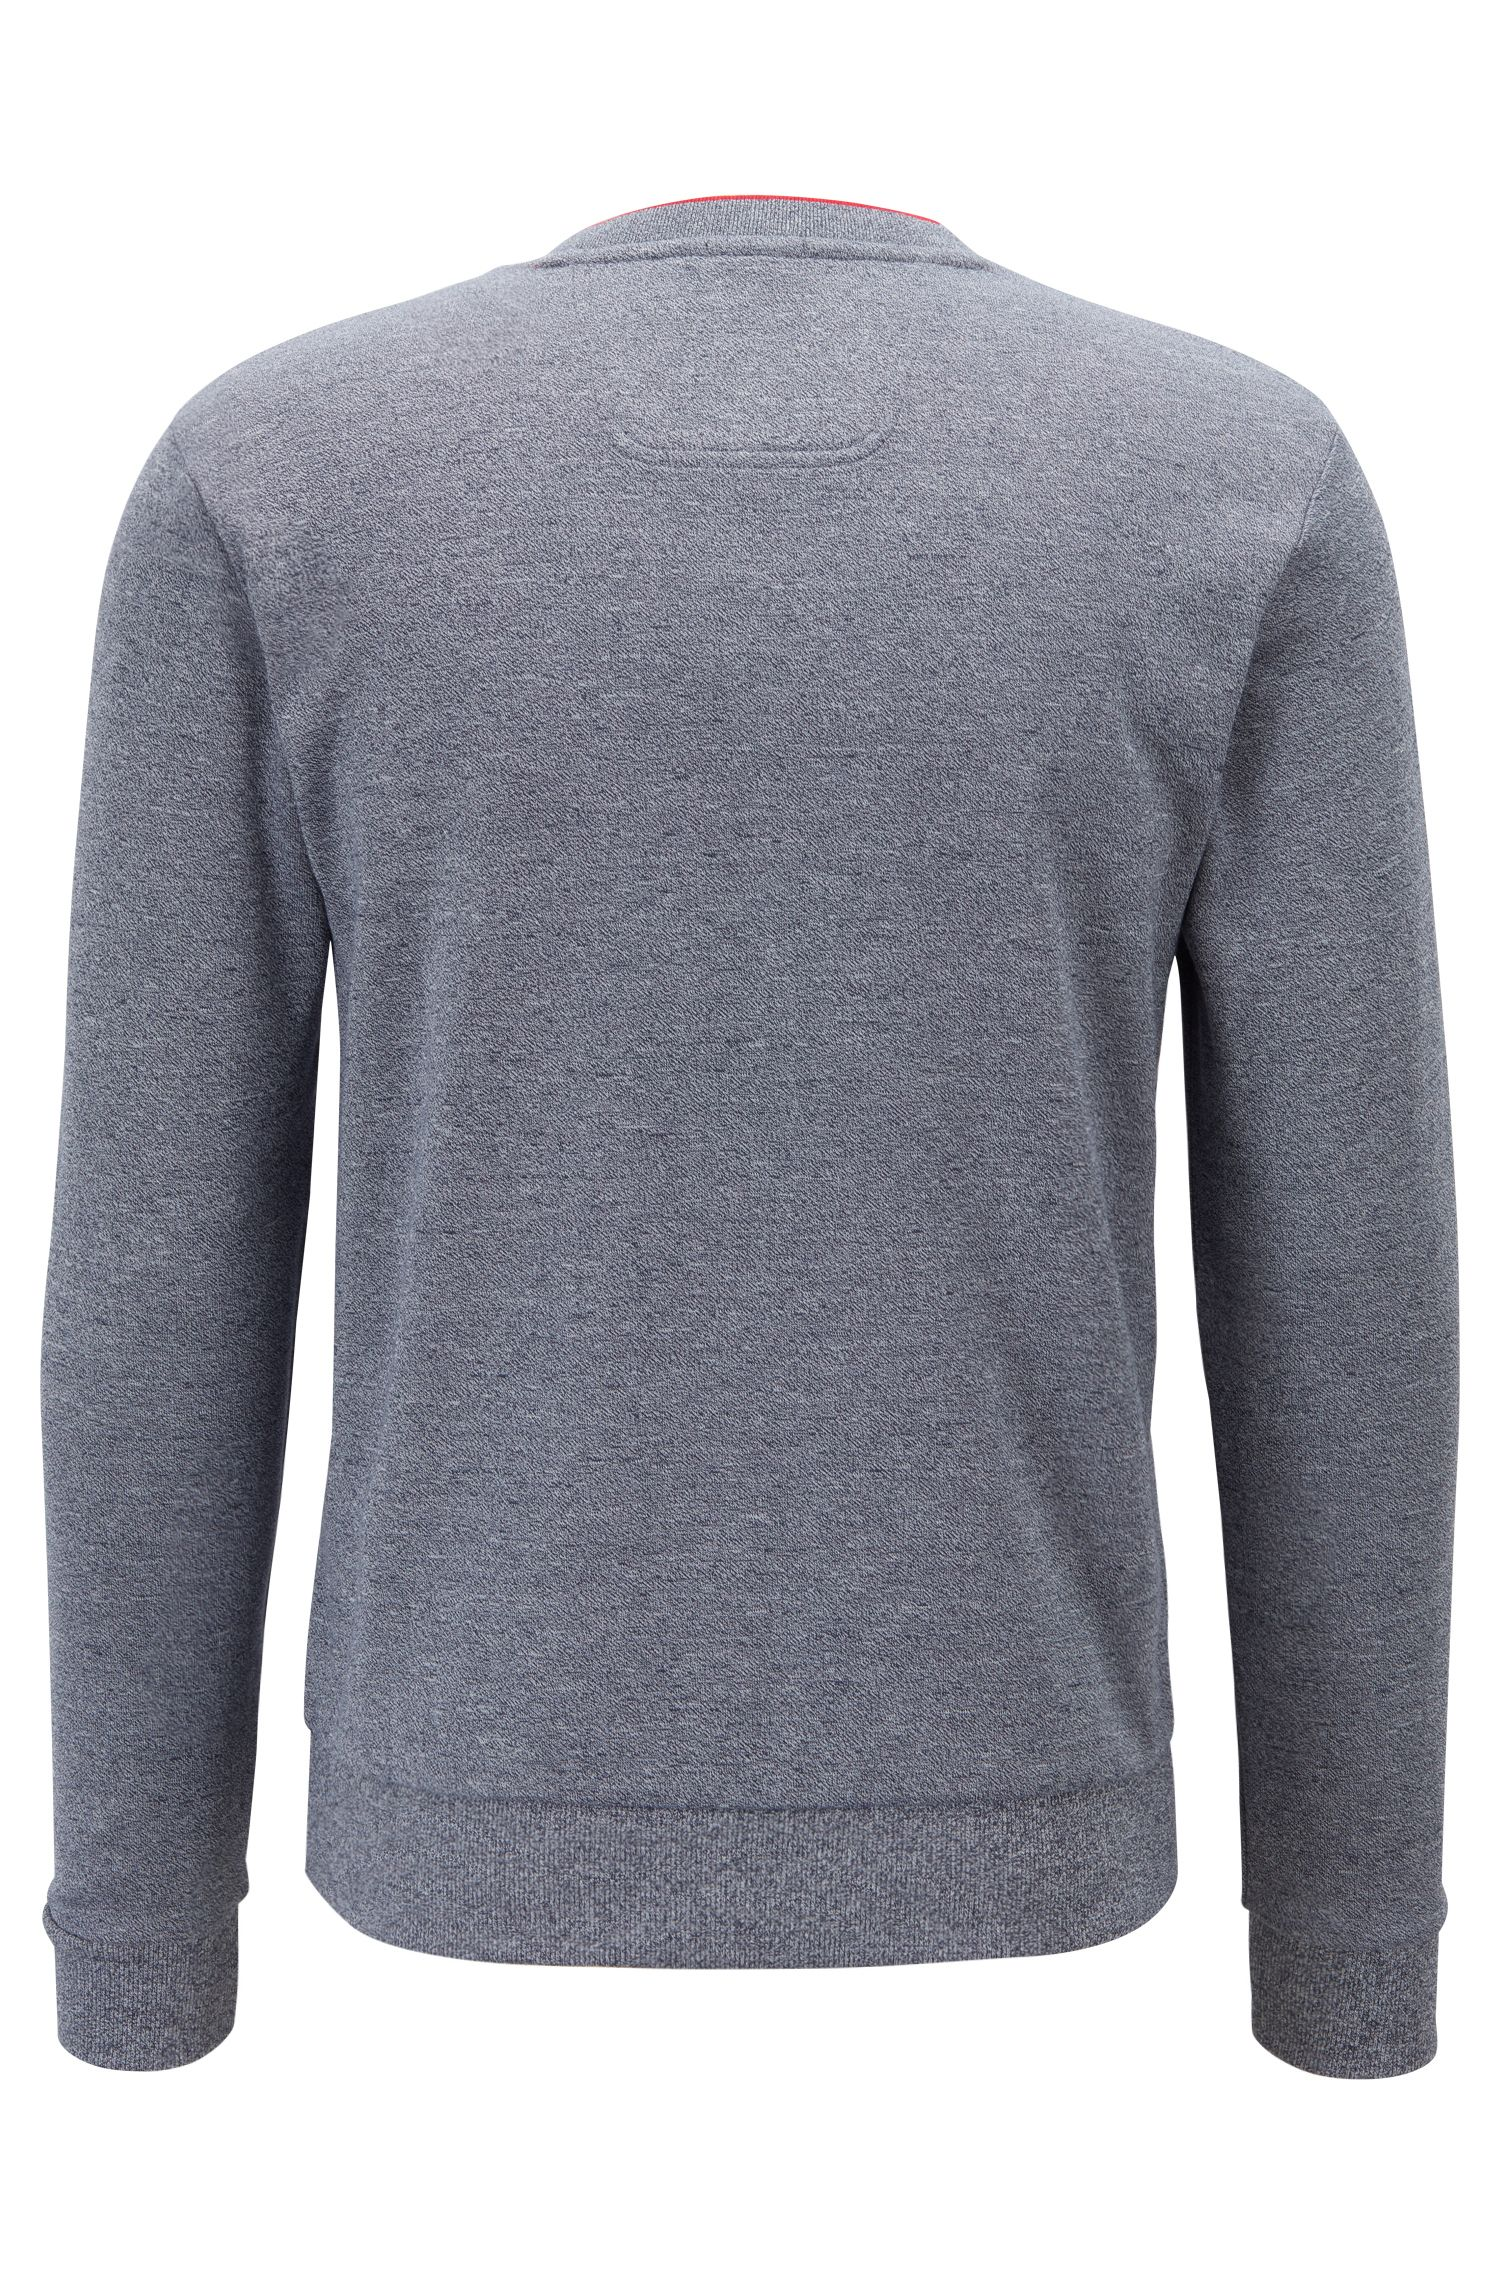 Slim-fit sweatshirt with tonal embossed logo, Blue